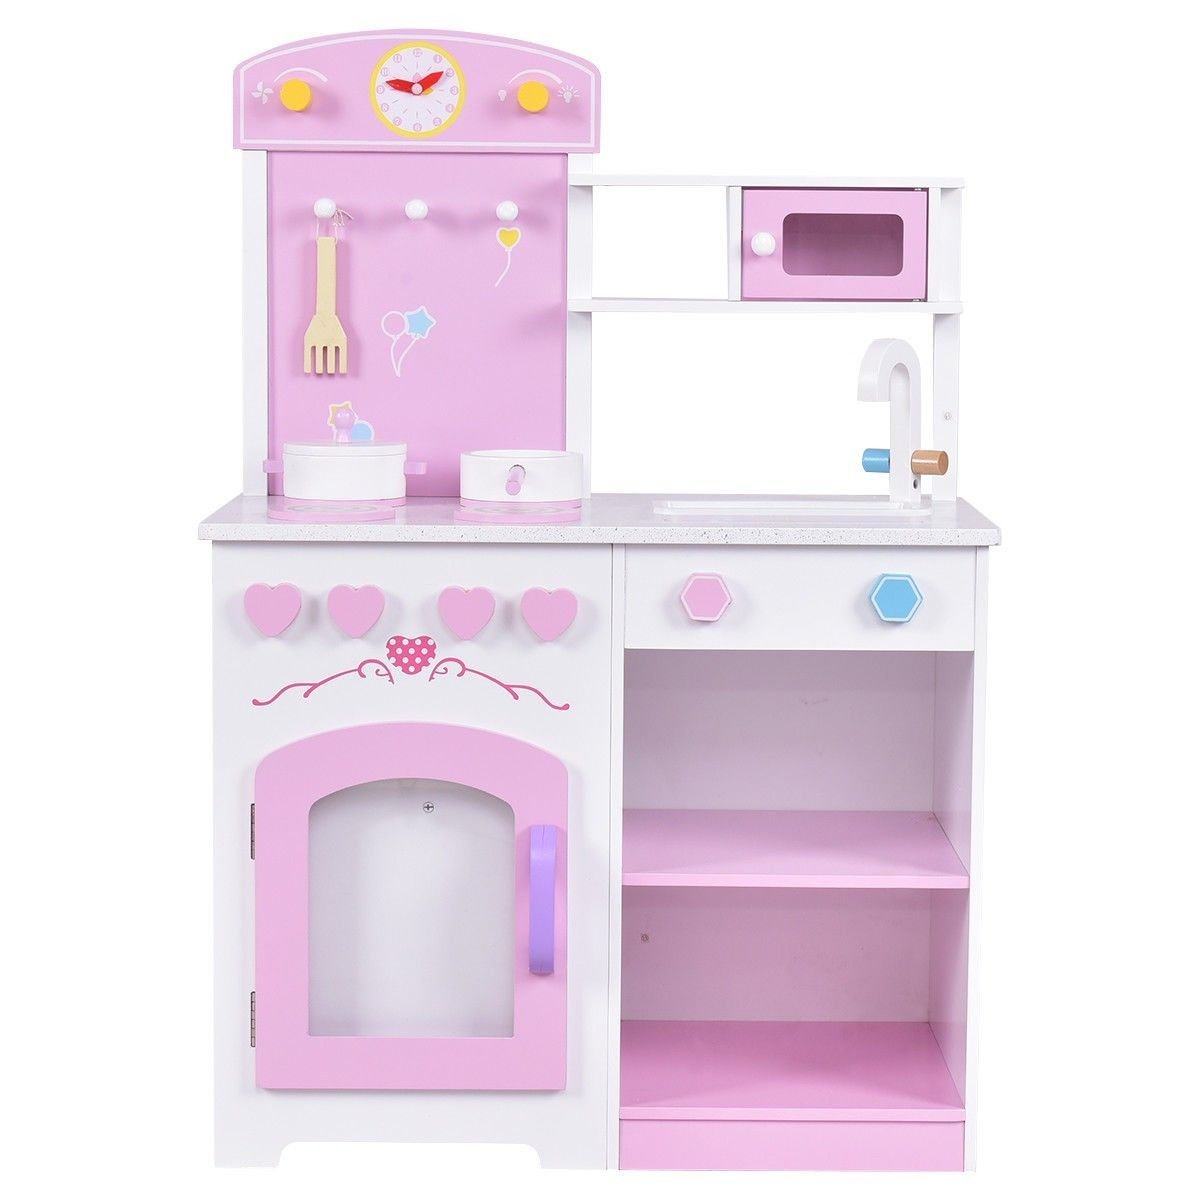 2 in 1 Wood Kids Toy Kitchen Cooking Pretend Play Set with Chair Pink for Girls